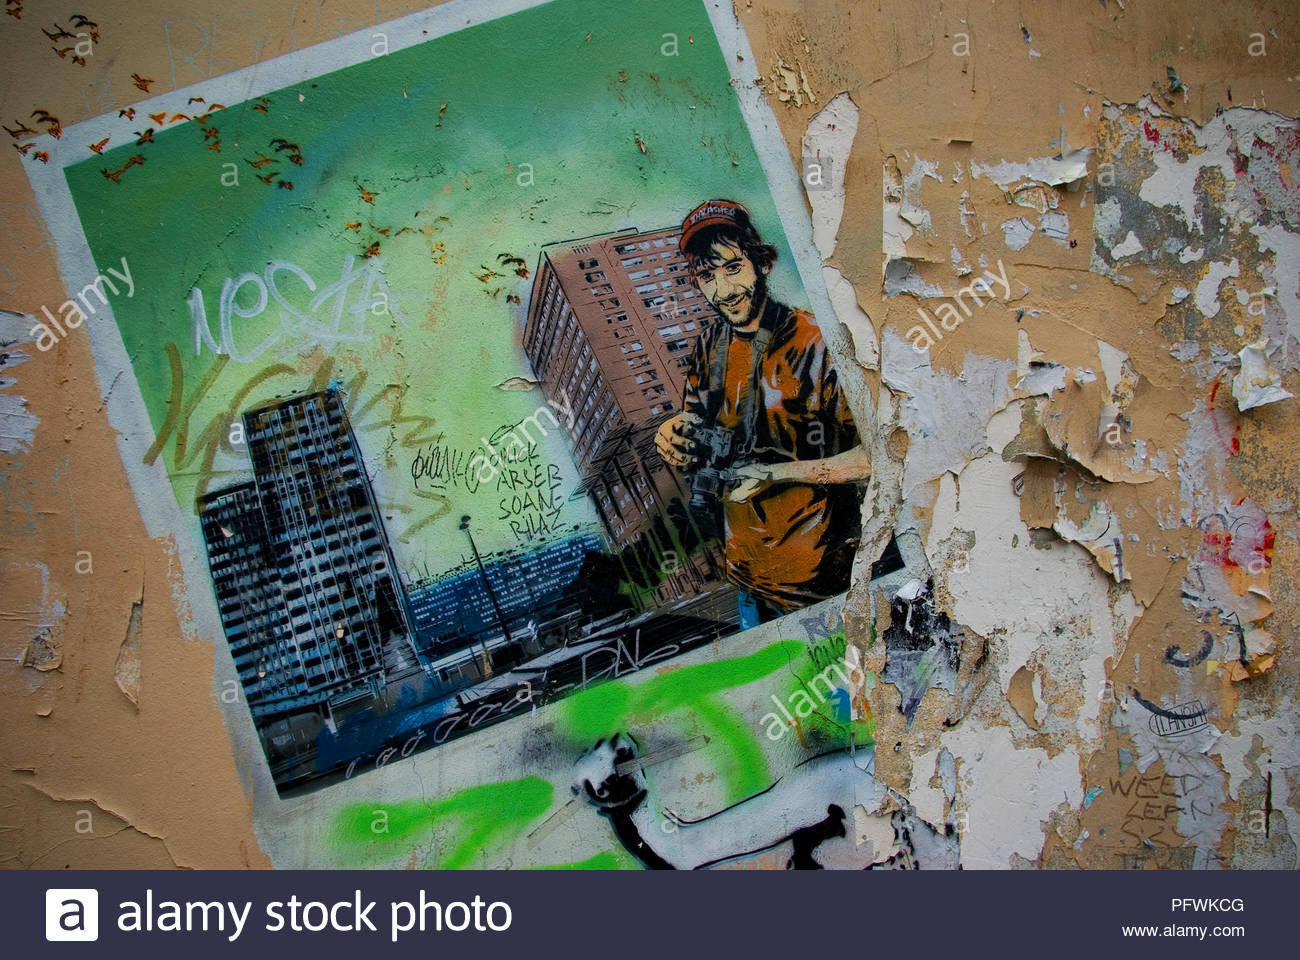 Time Warn Wall Painting In Paris Stock Photo 216308304 Alamy